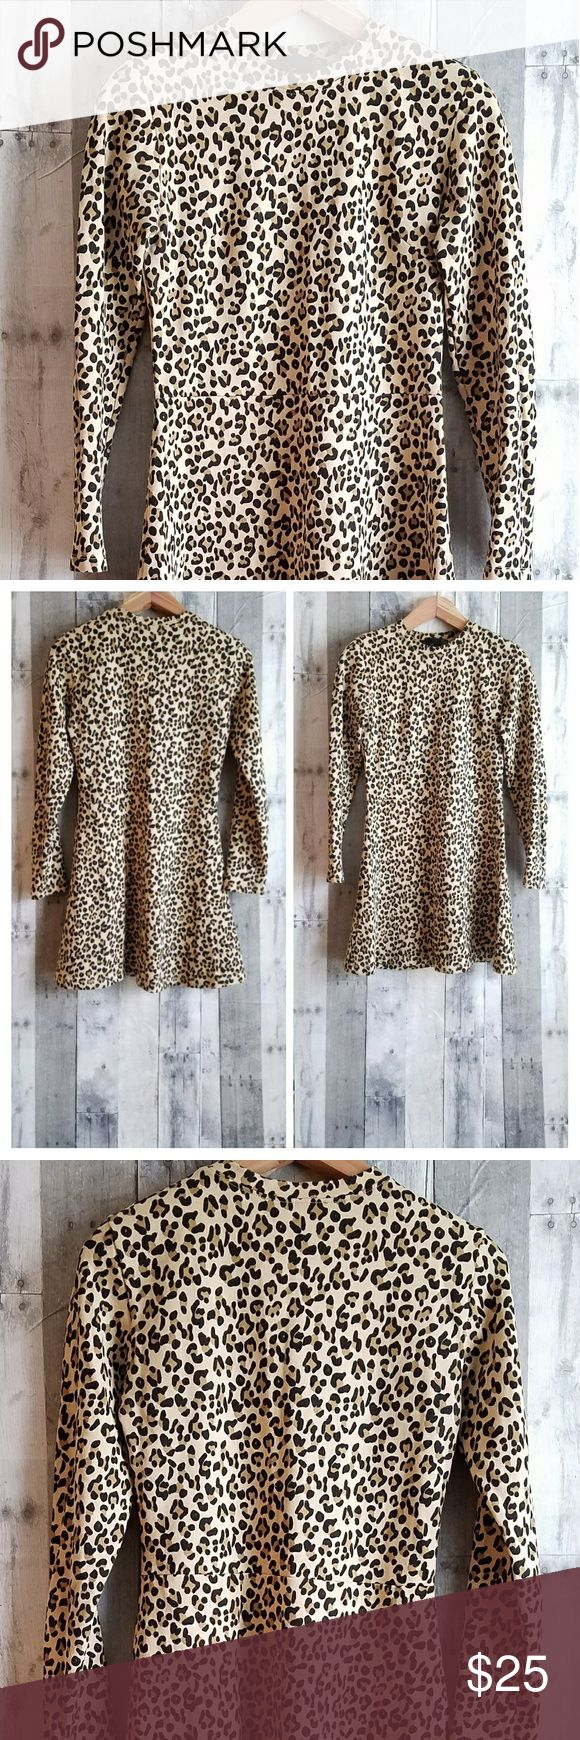 "🍍EUC TRF BY ZARA animal print long sleeved dress EUC TRF BY ZARA animal print long sleeved fit amd flare dress. 100% cotton. The measurements are as follows- Shoulder to shoulder- 16 1/2"" Armpit to armpit- 17 1/2"" Bust- 34"" Waist- 30"" Hips- 42"" Length- 34"" Sleeve length- 24"" Zara Dresses Long Sleeve"